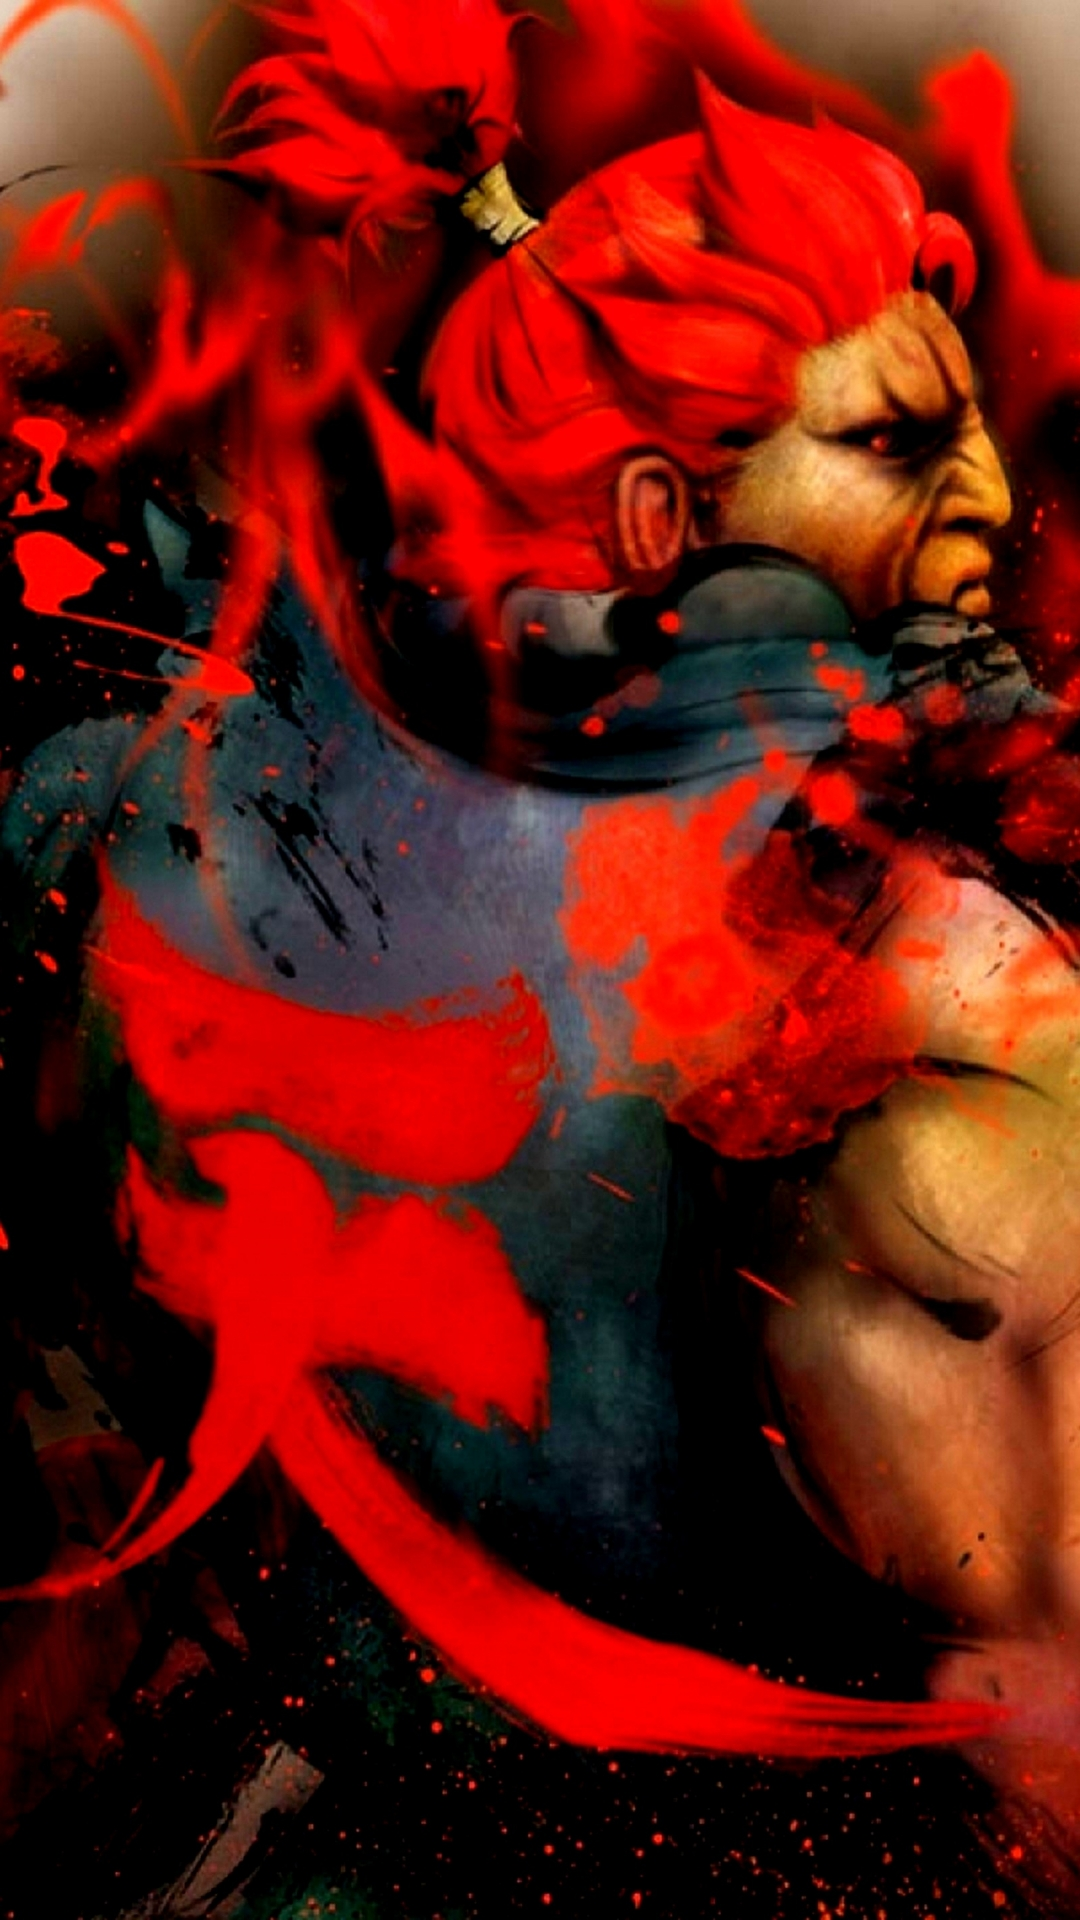 Street Fighter Wallpaper Hd Posted By Ryan Anderson